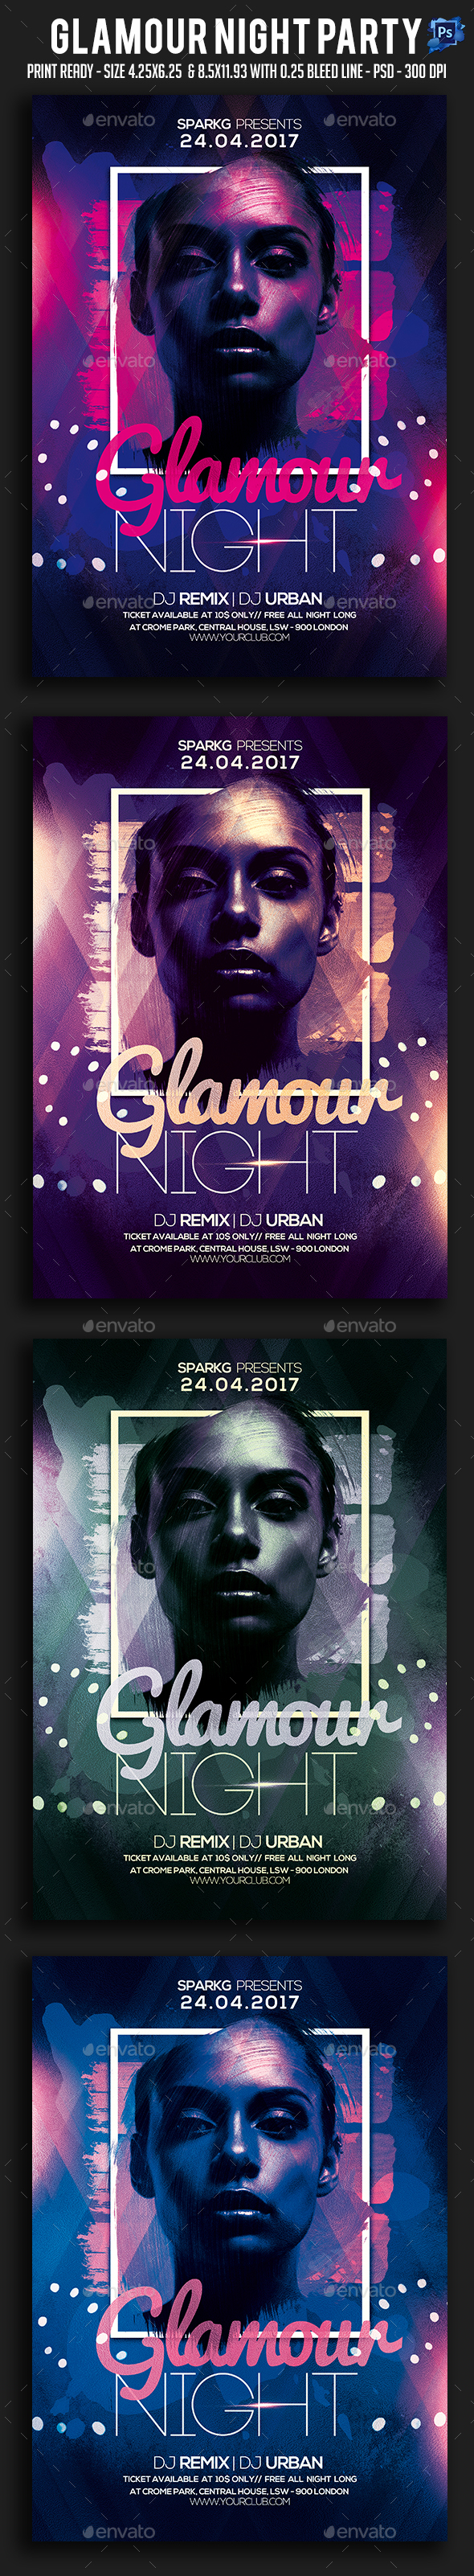 Glamour Night Party Flyer - Clubs & Parties Events